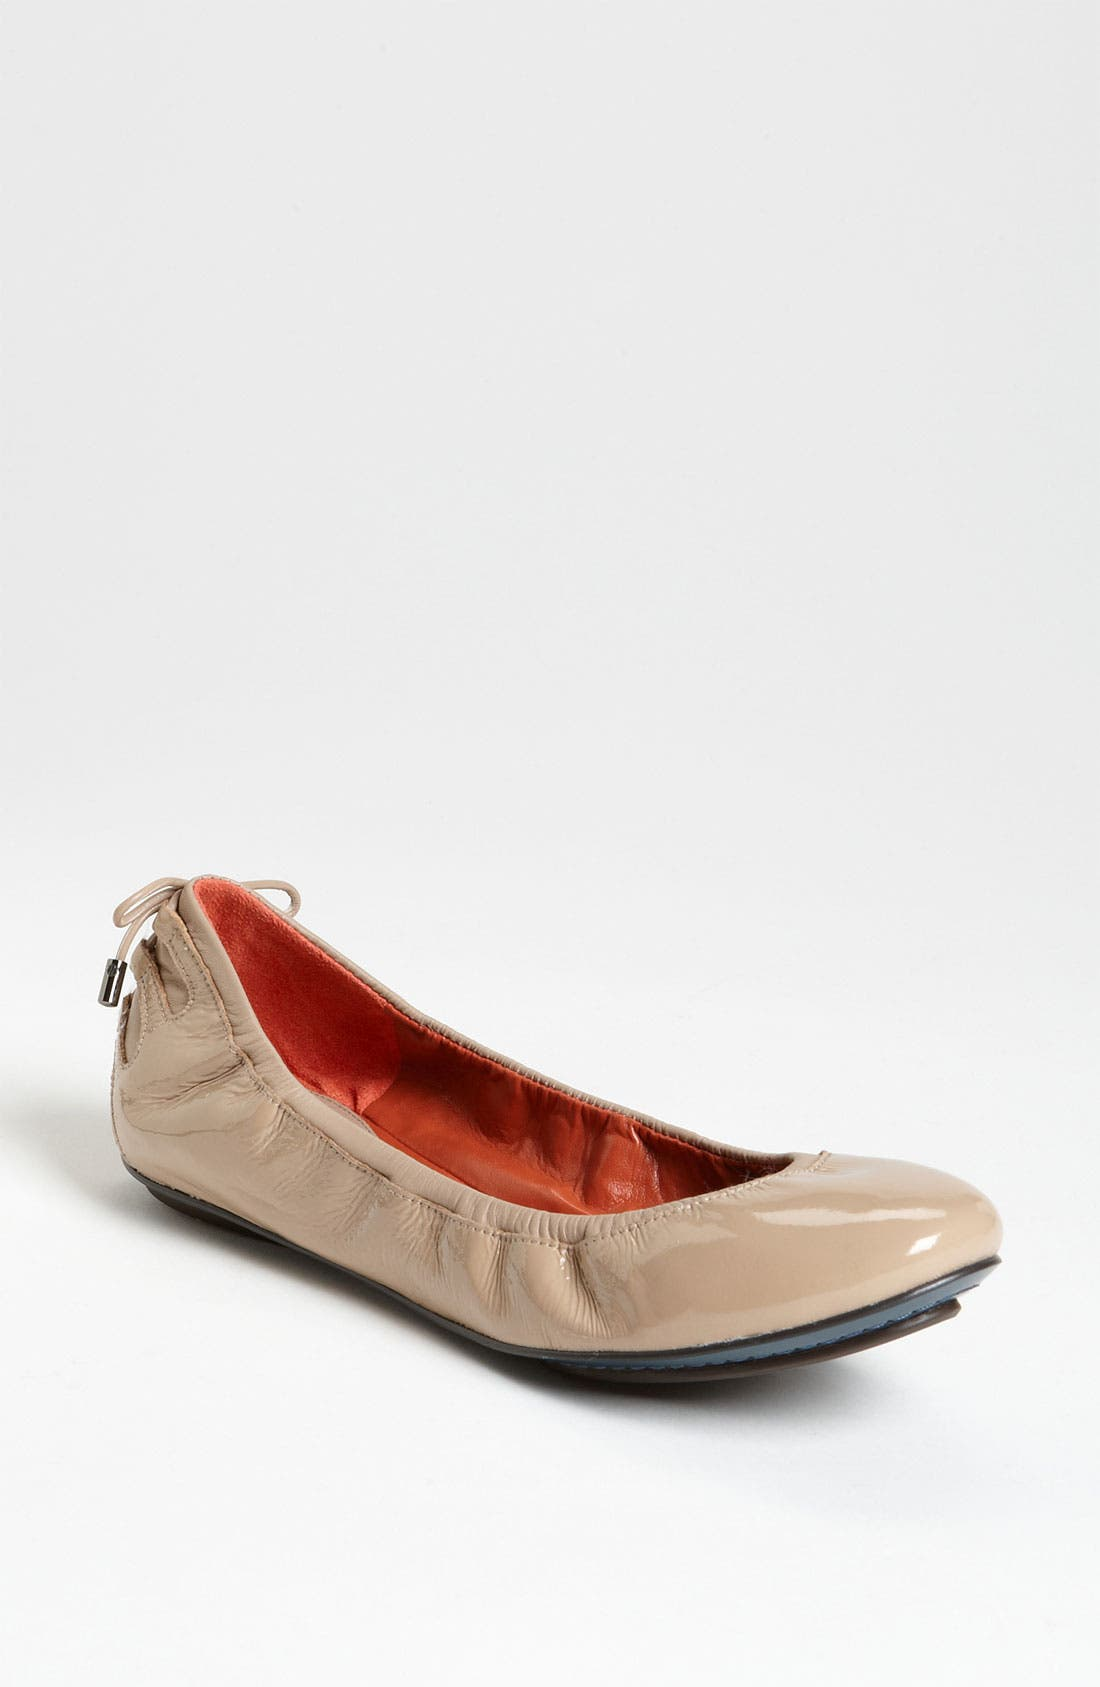 ,                             Maria Sharapova by Cole Haan 'Air Bacara' Flat,                             Main thumbnail 39, color,                             252